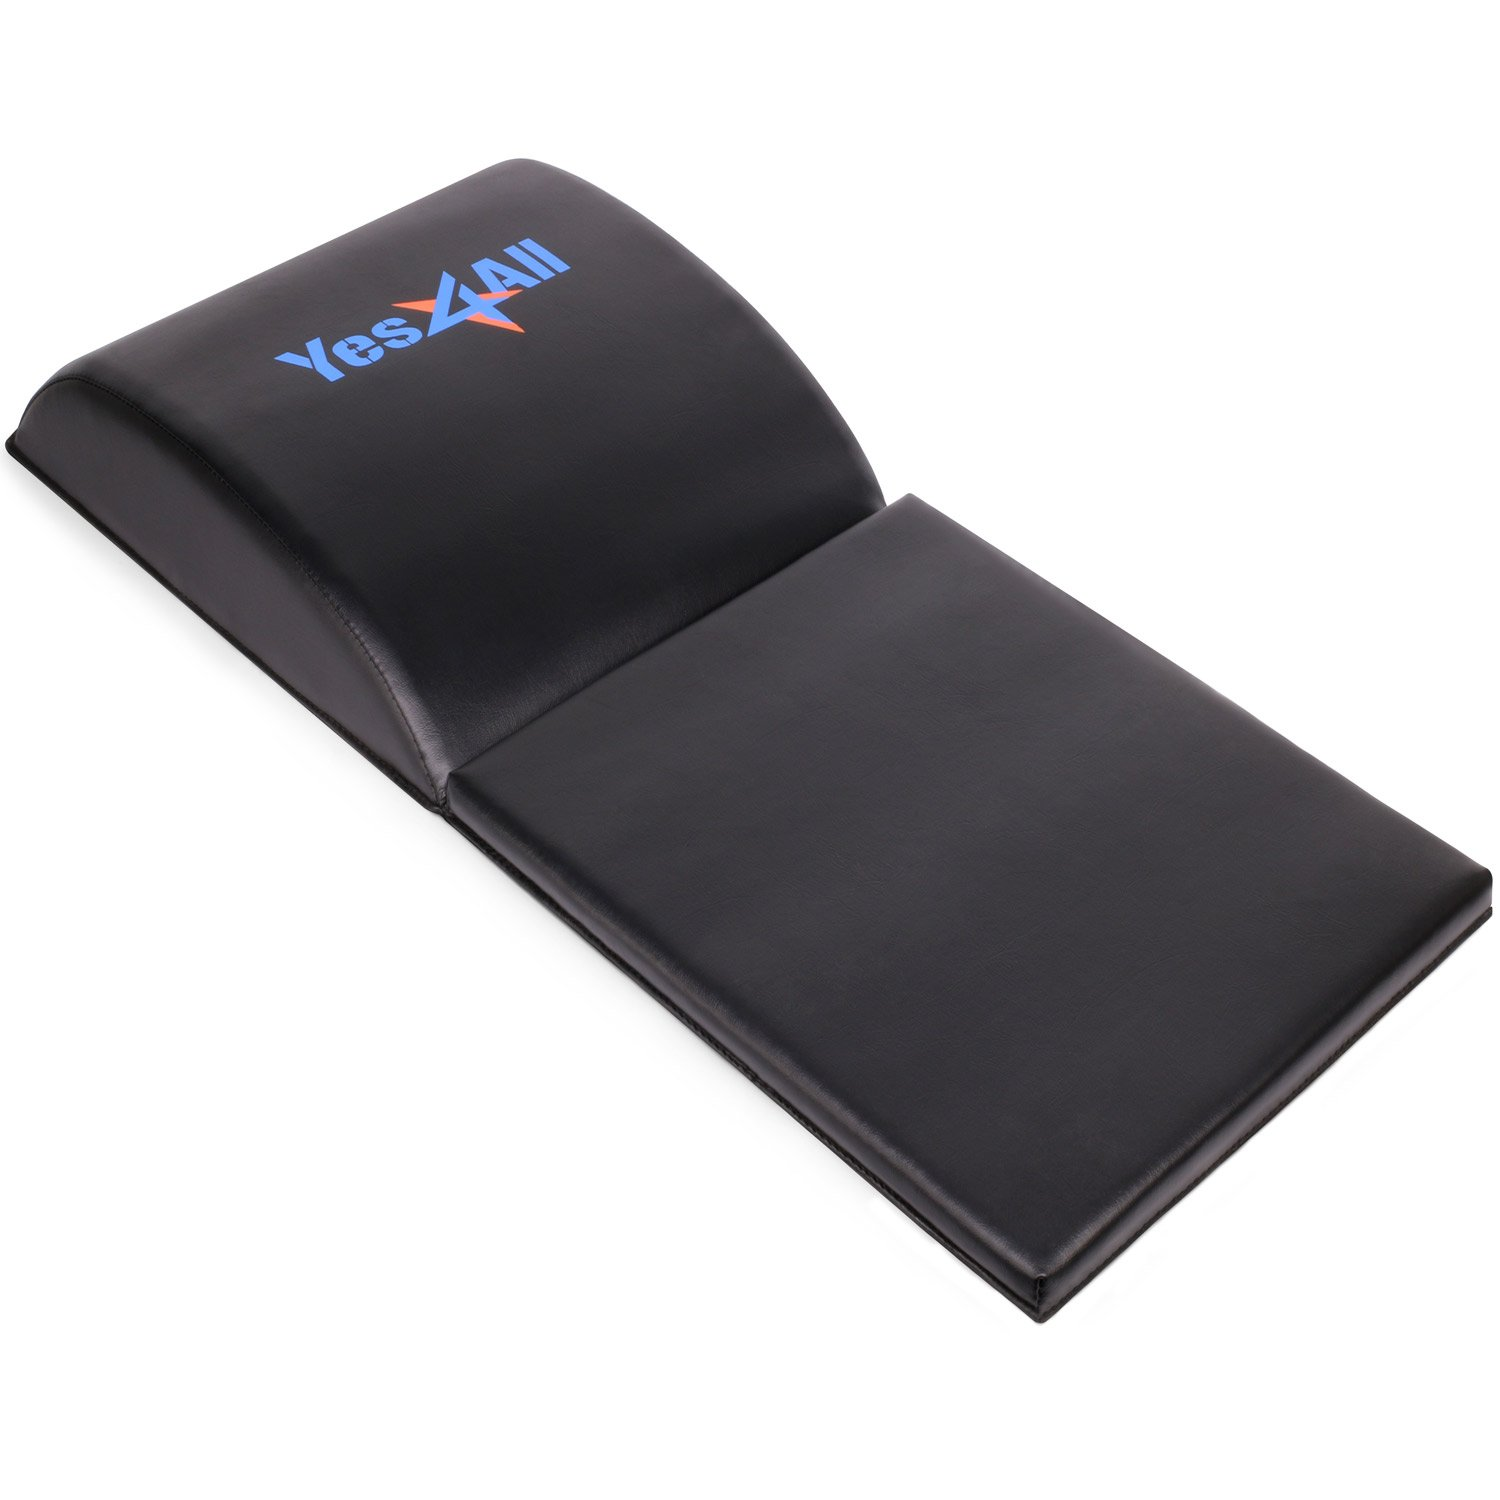 Yes4All Ab Exercise Mat with Tailbone Protecting Pad, Abdominal Wedge Support for Abs Workout, Sit Up Abdominal Mat Tailbone Protector Black